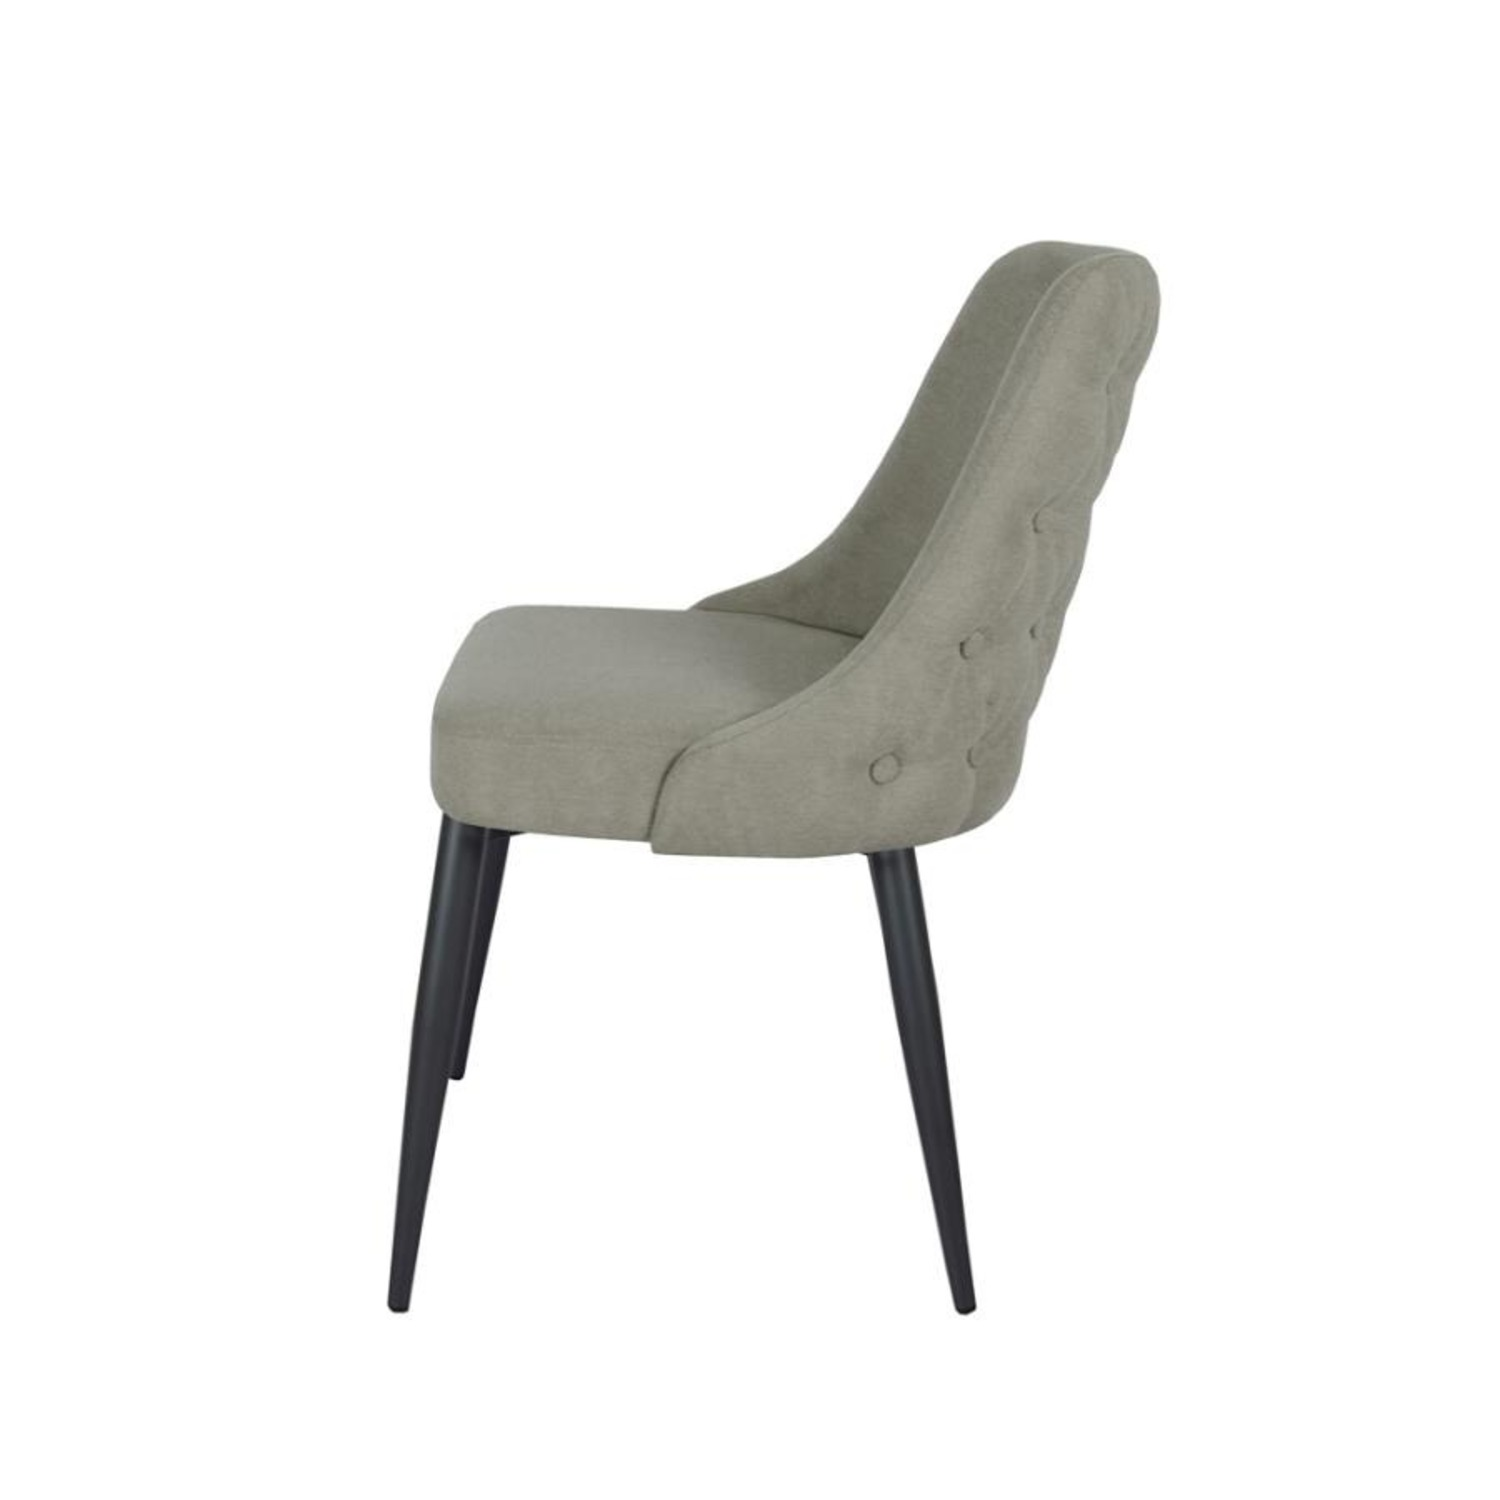 Dining Chair In Off White Microfiber W/Curved Back - image-2